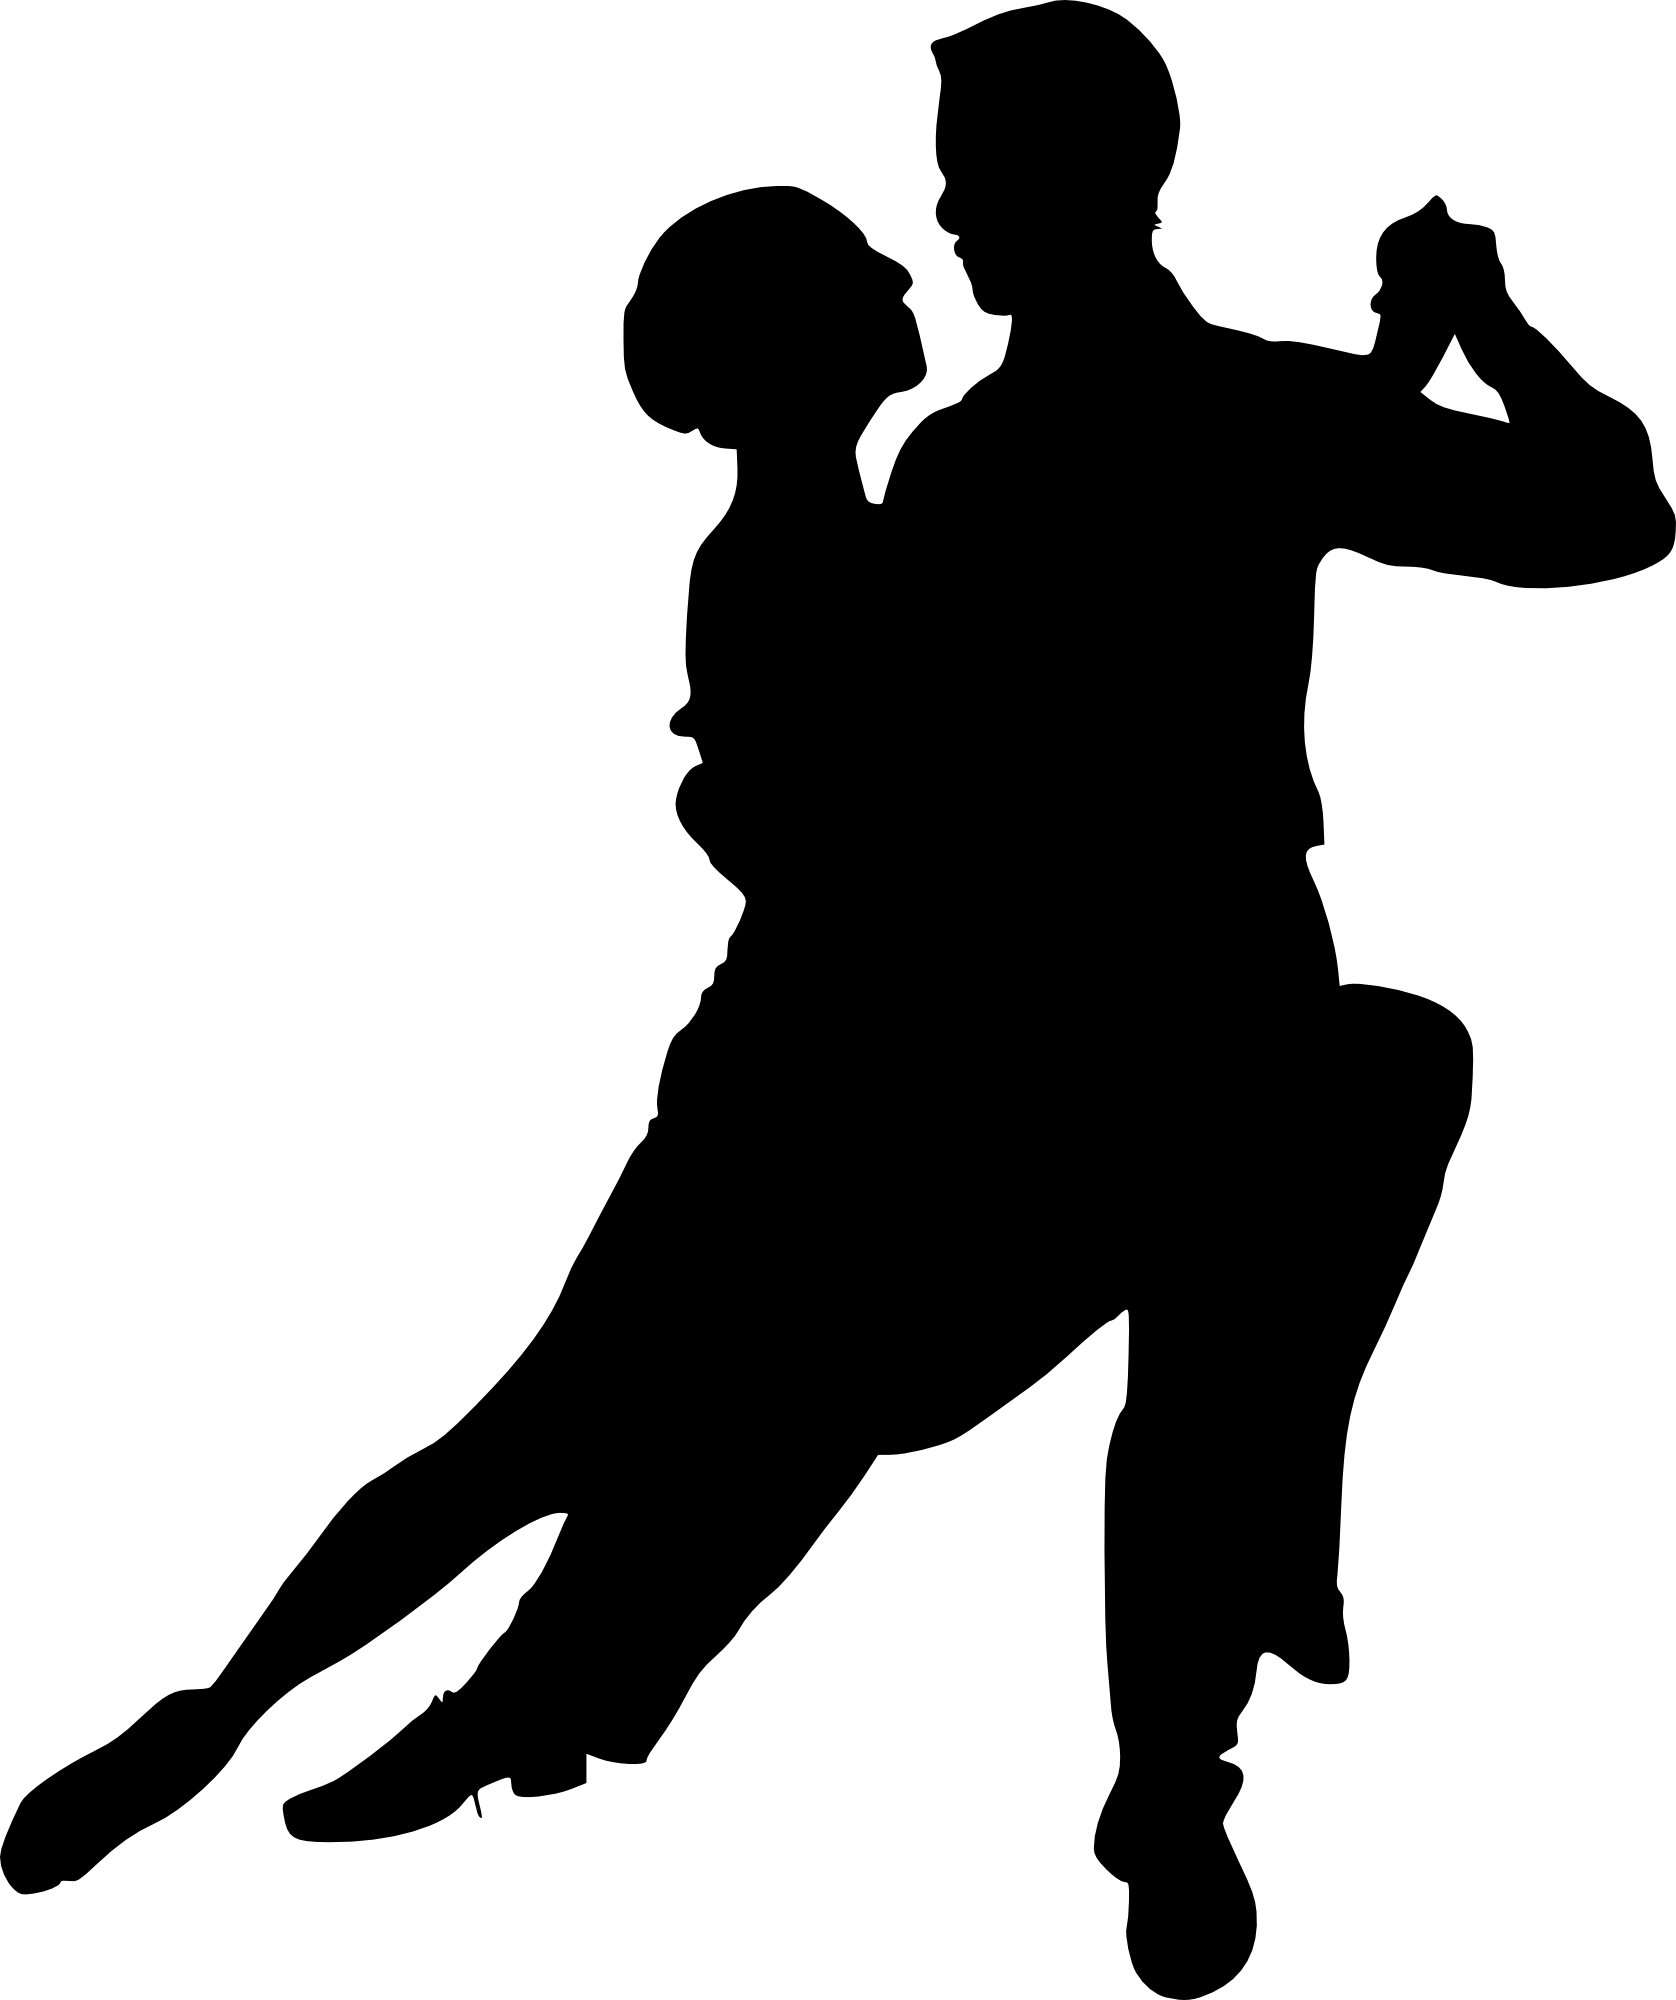 Dancer Silhouette Transparent Background